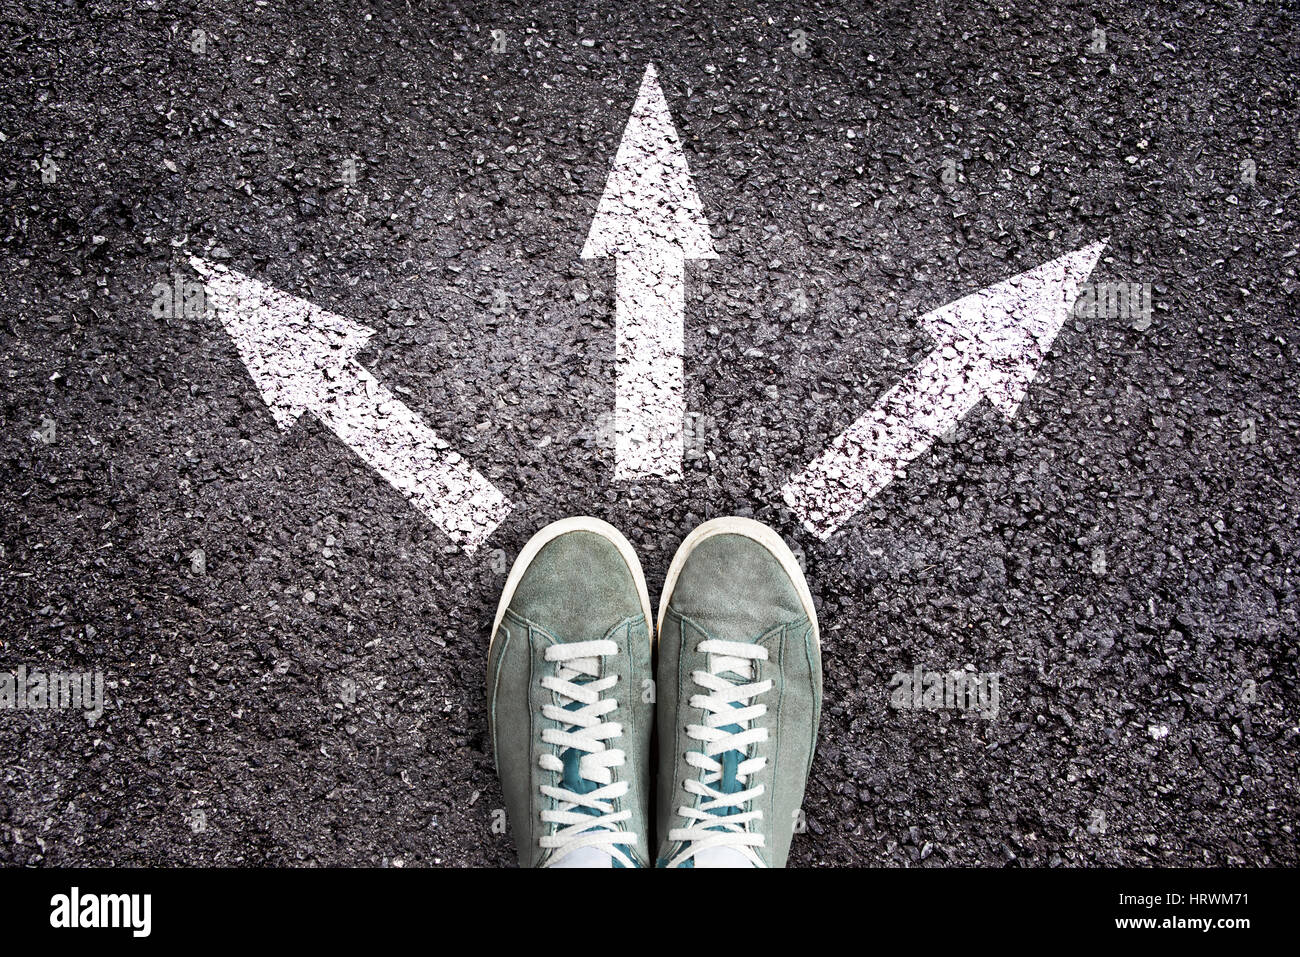 Shoes and arrows pointing in different directions on asphalt floor - Stock Image